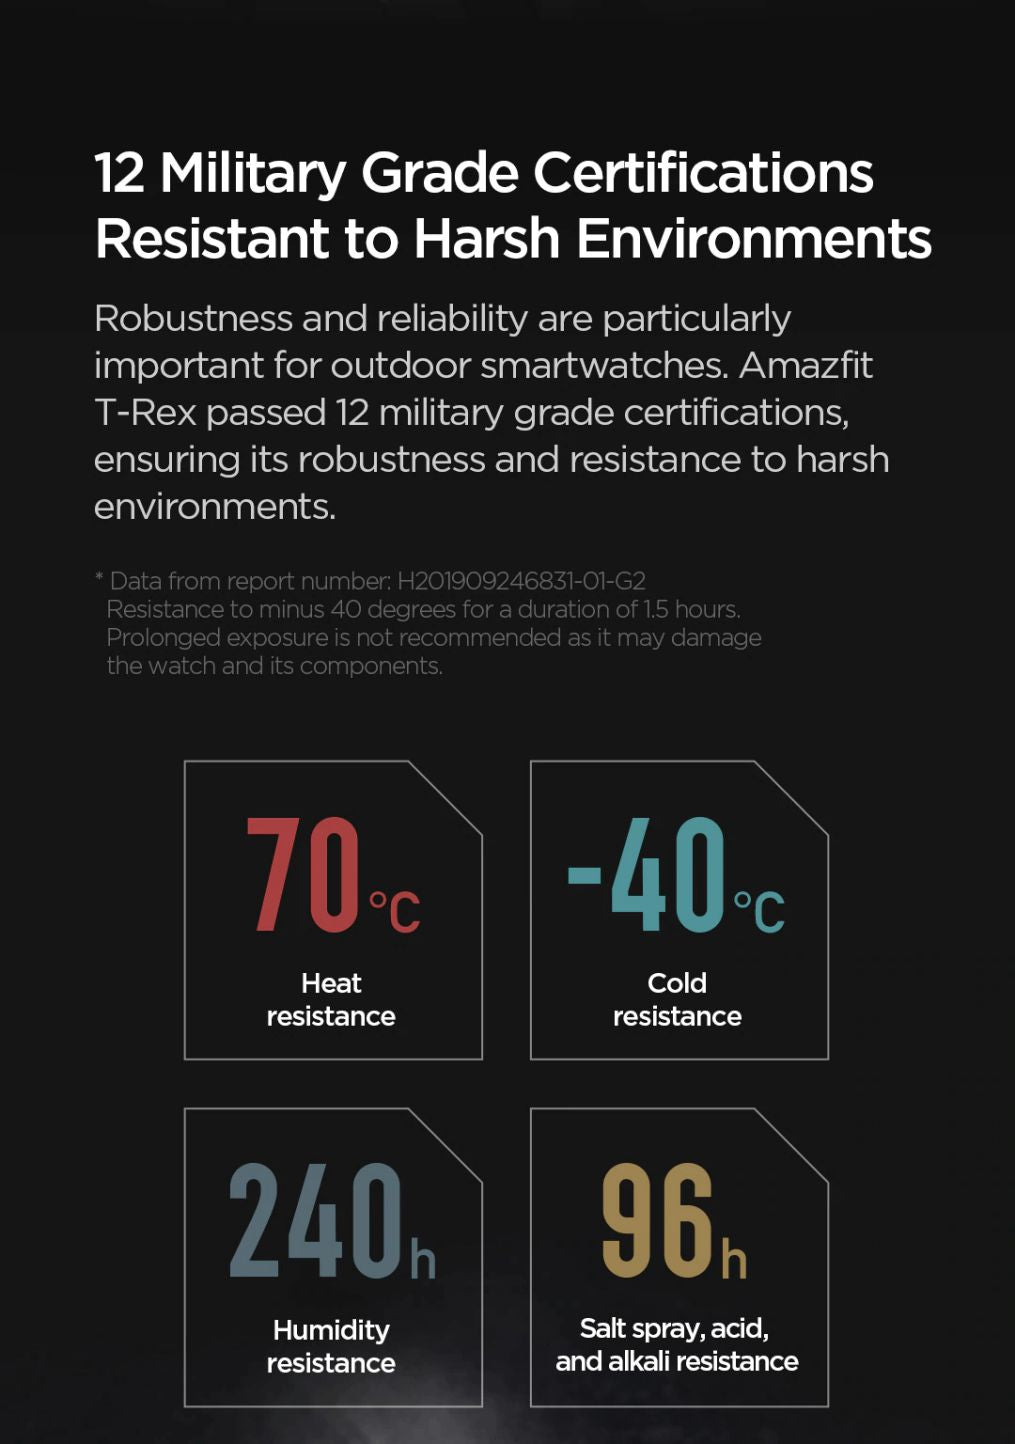 Amazfit T-Rex 12 Military Certifications